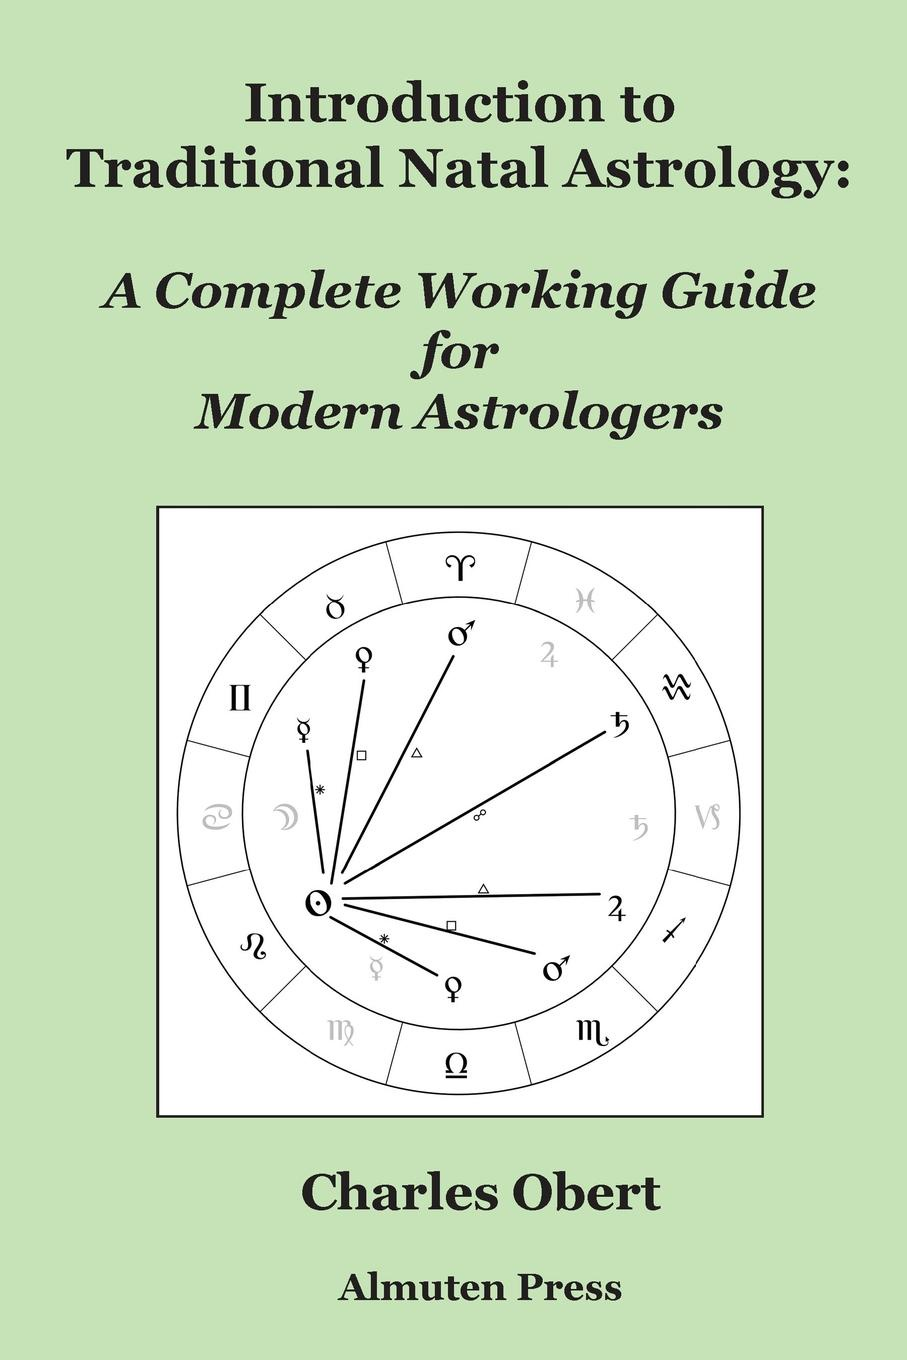 Charles Obert Introduction to Traditional Natal Astrology. A Complete Working Guide for Modern Astrologers a complete guide to the buddhist path